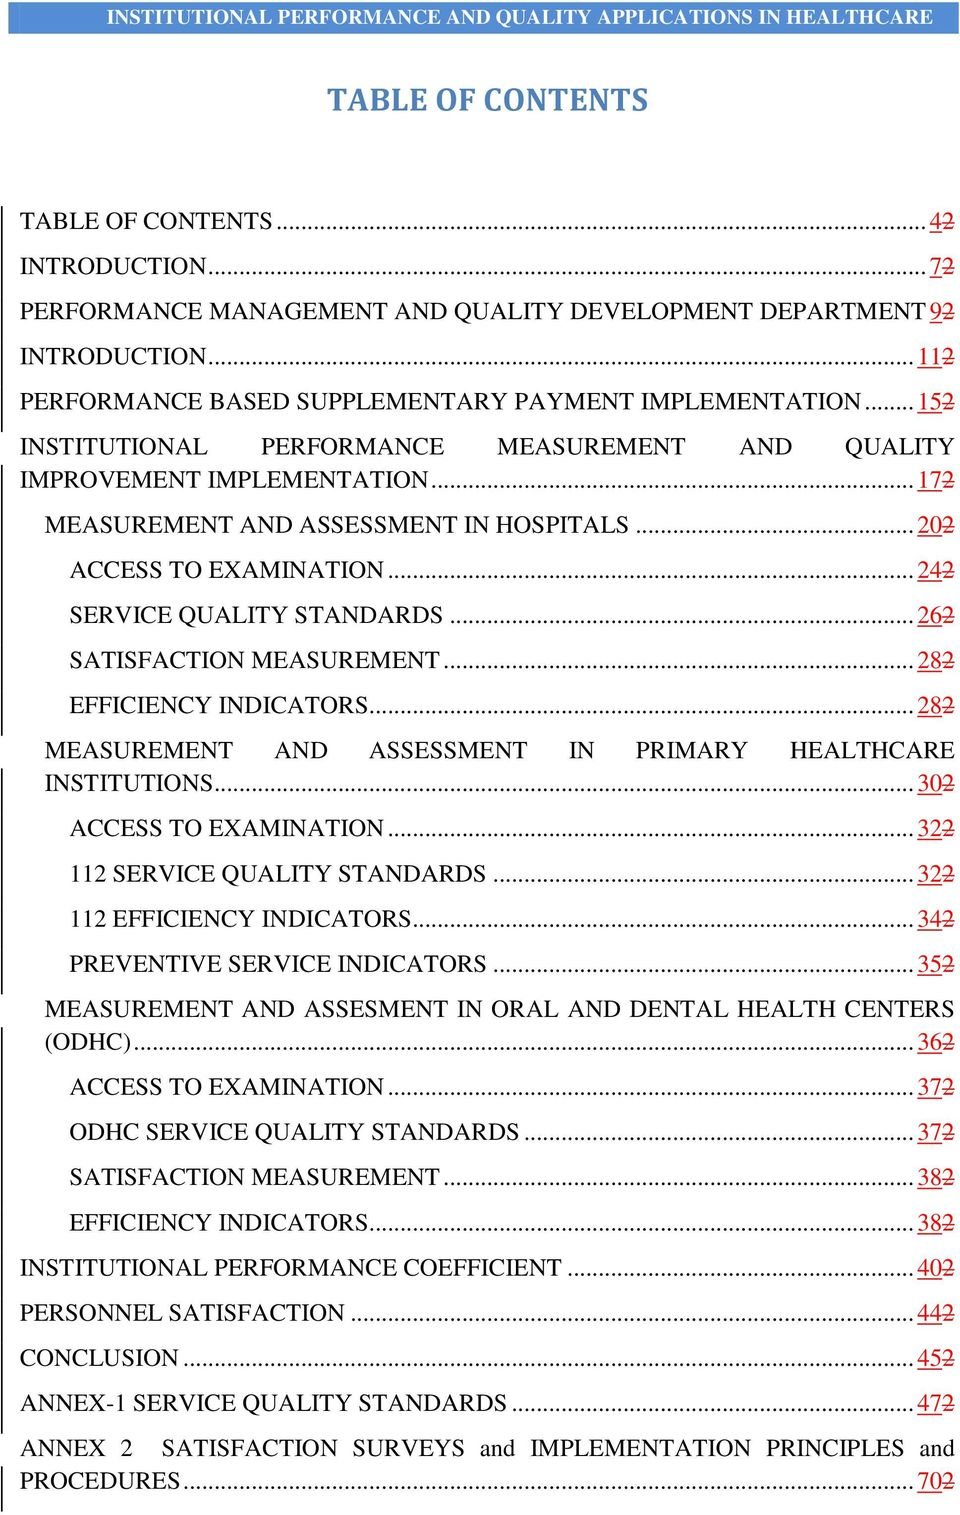 .. 22 SATISFACTION MEASUREMENT... 282 EFFICIENCY INDICATORS... 282 MEASUREMENT AND ASSESSMENT IN PRIMARY HEALTHCARE INSTITUTIONS... 302 ACCESS TO EXAMINATION... 322 112 SERVICE QUALITY STANDARDS.